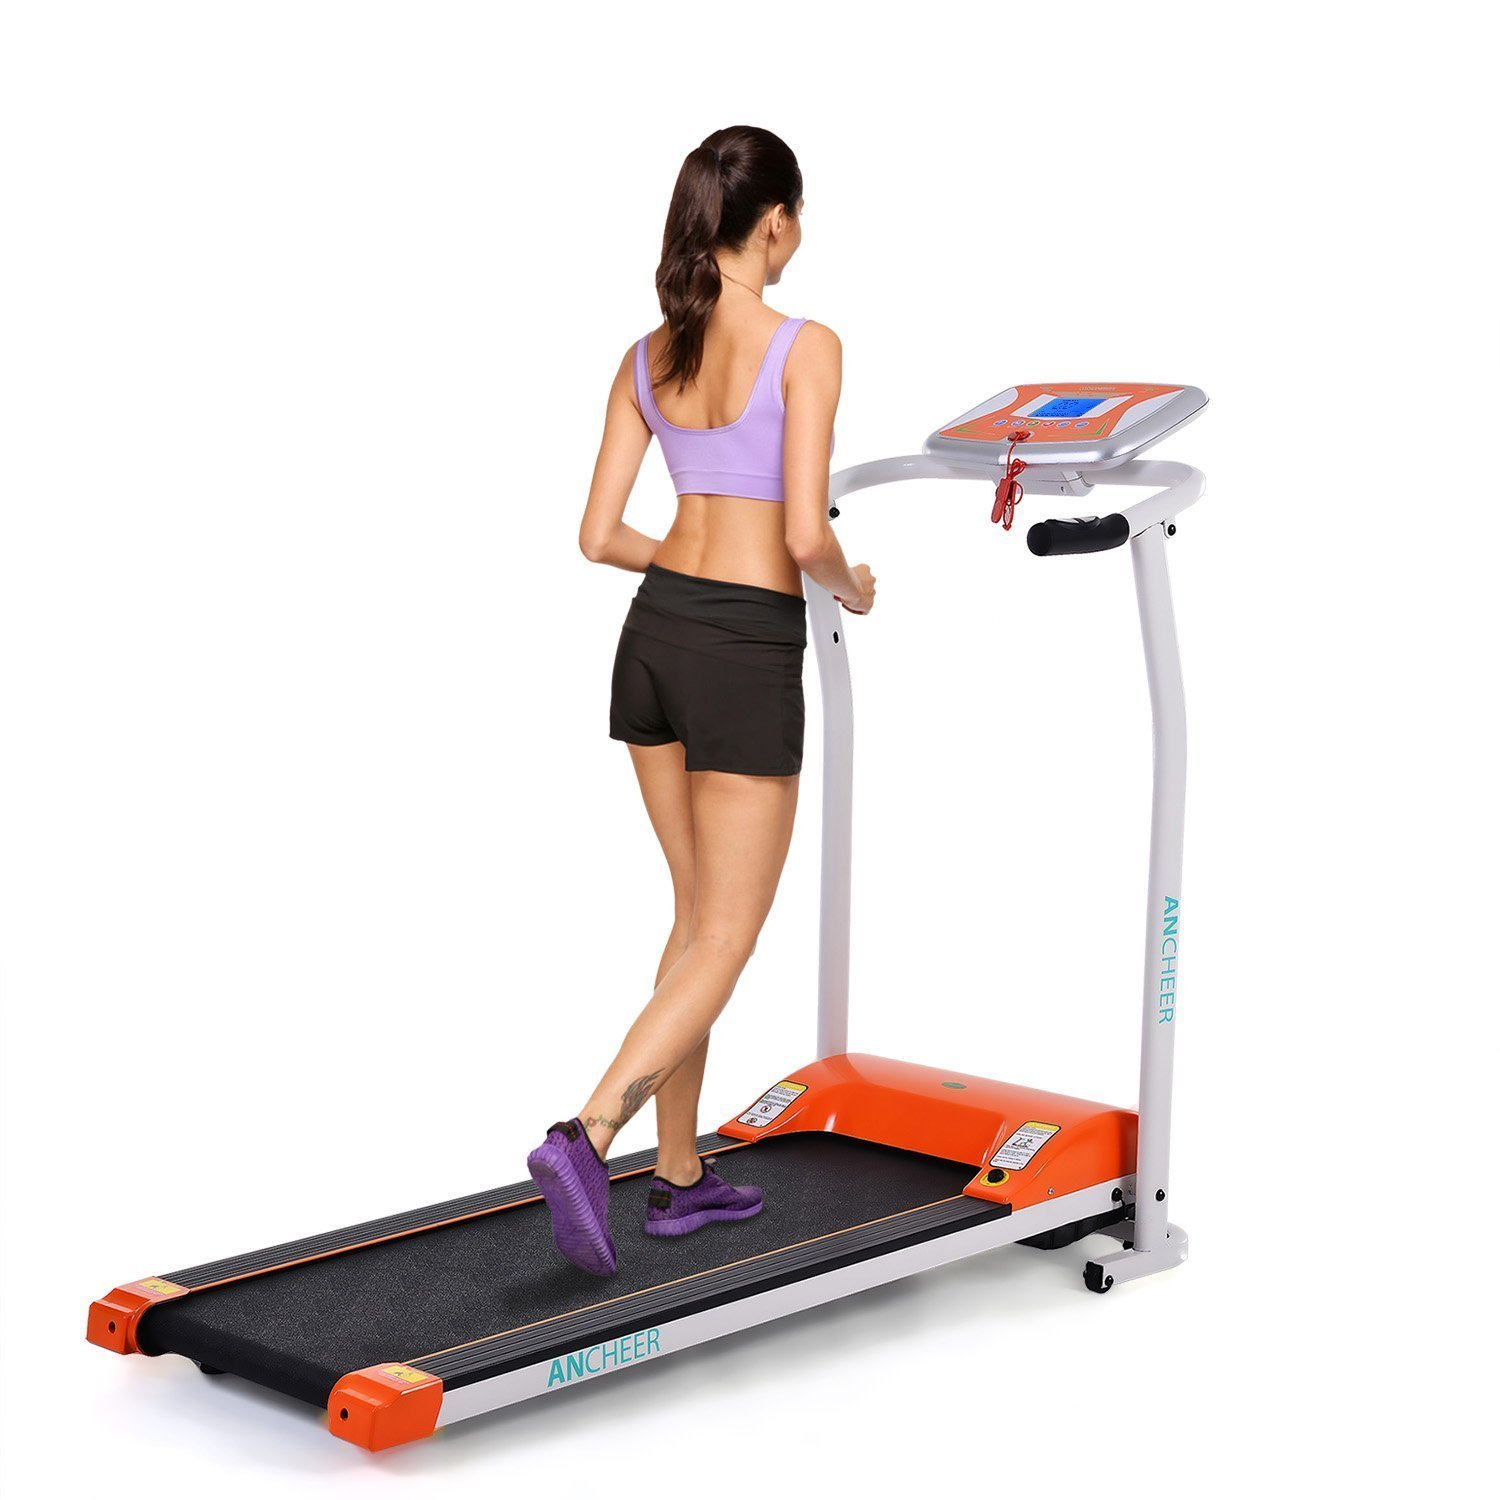 Top 10 Best Treadmill Under 300 For 2018 Electric Treadmill